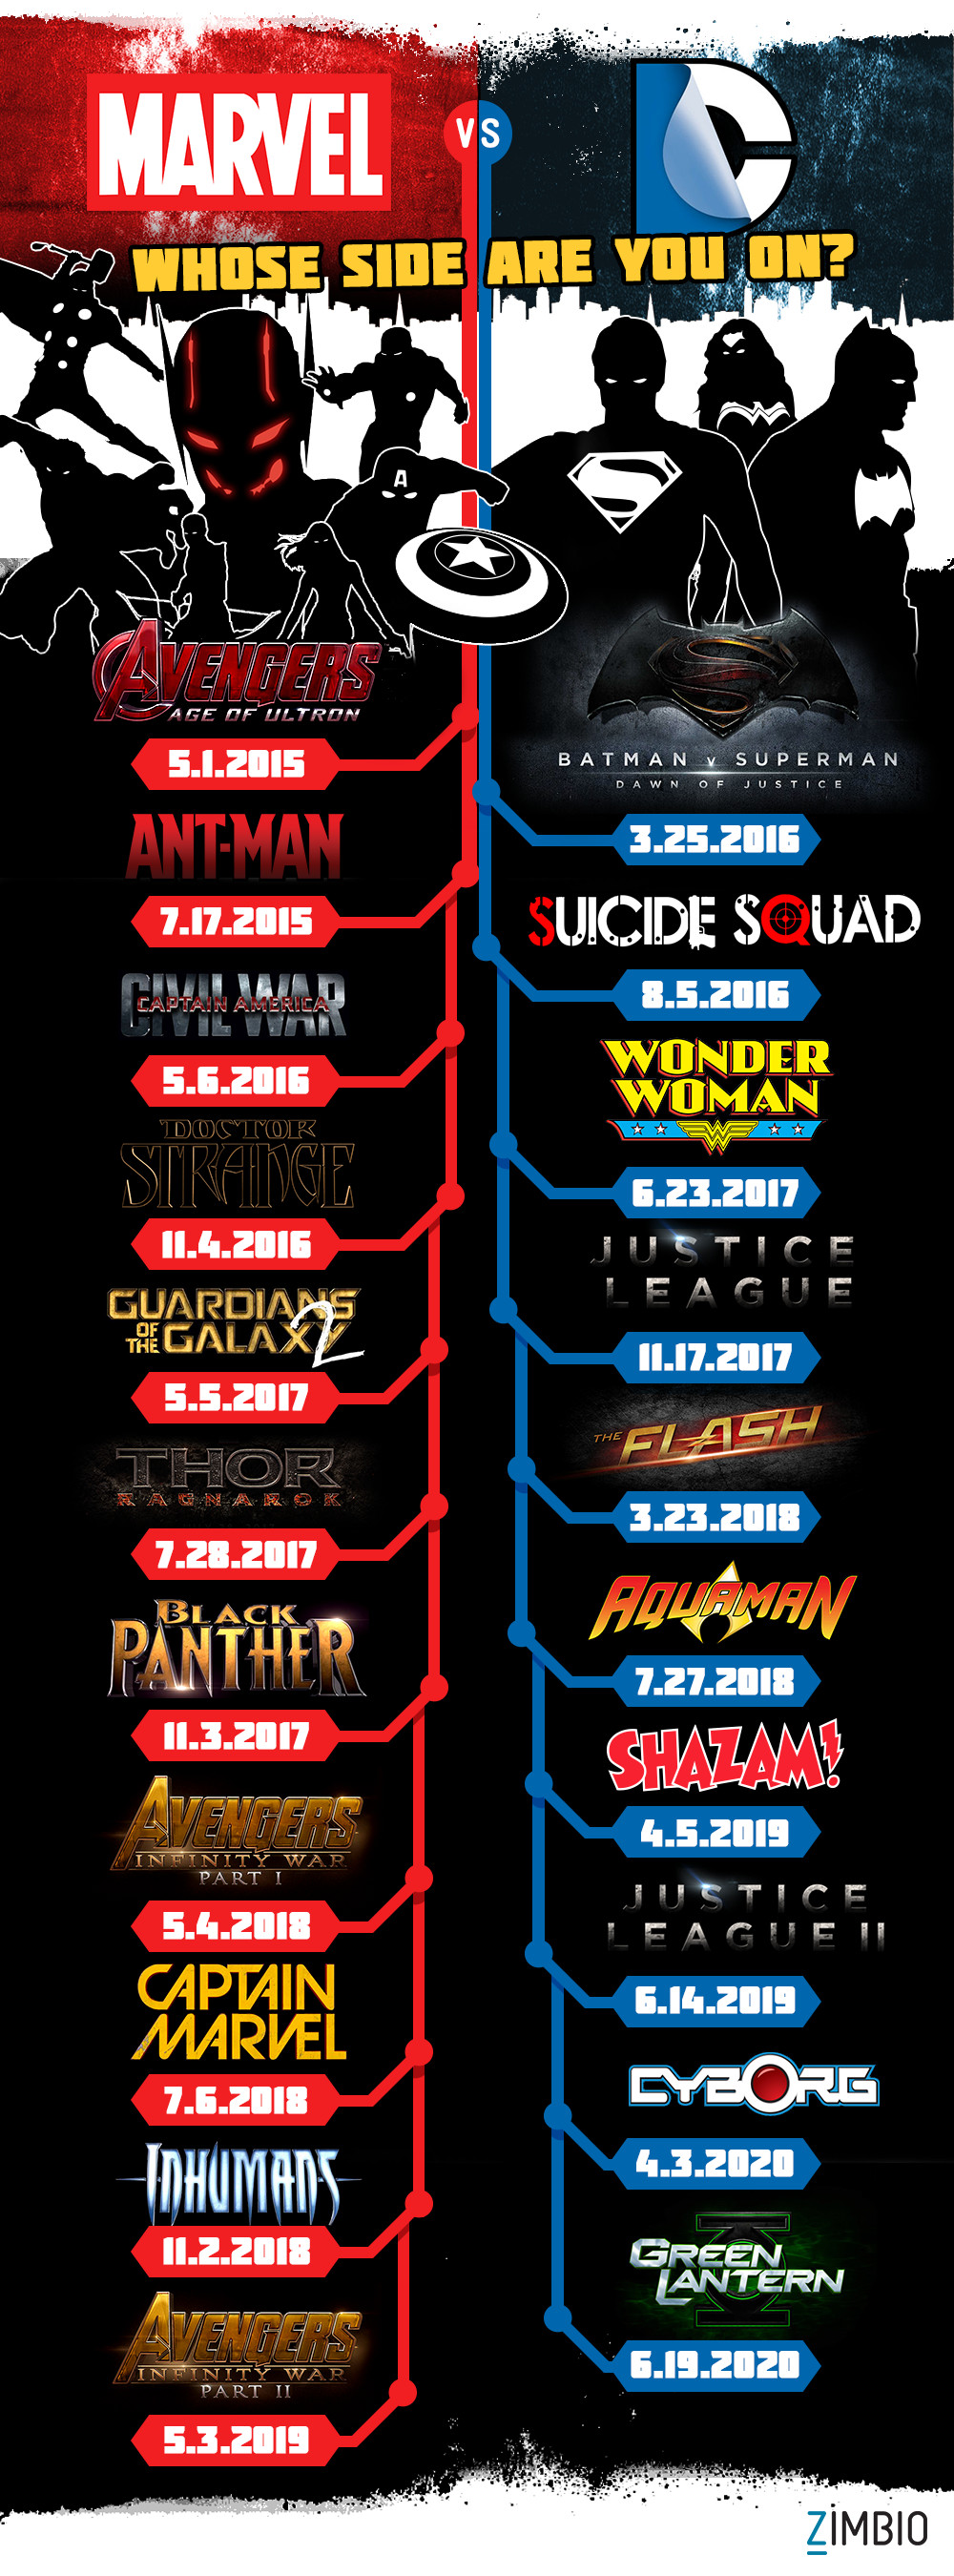 Marvel & DC Comics Theatrical Release Schedule Infographic | FilmBook